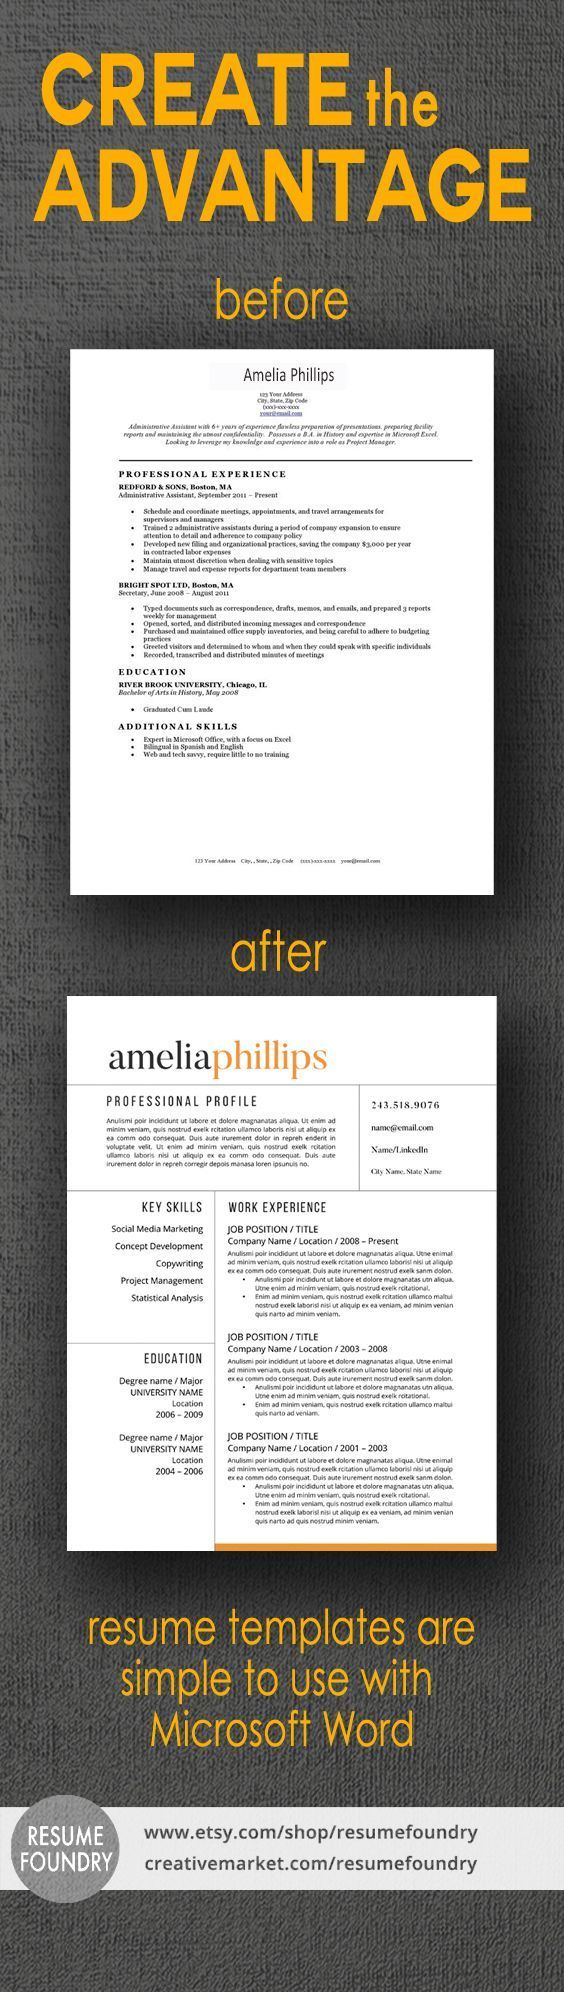 Cv templates to purchase